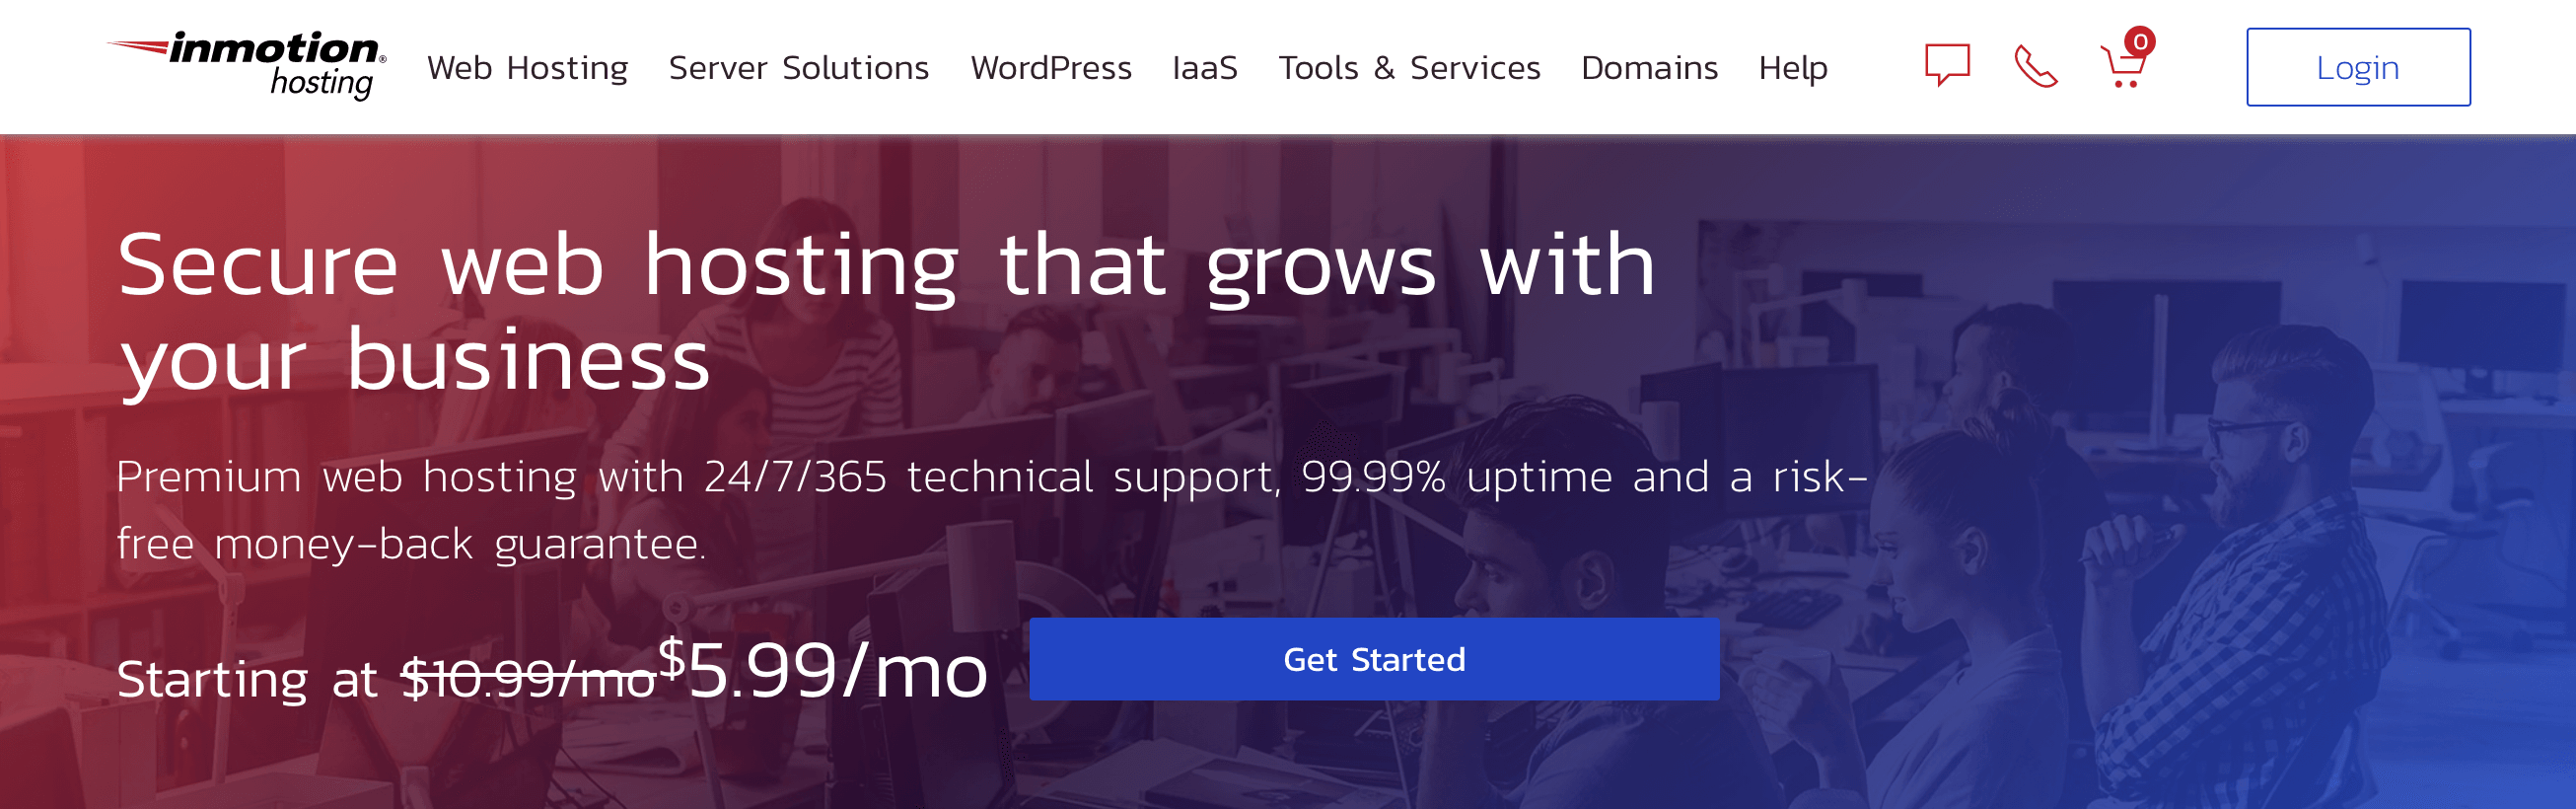 The InMotion Hosting home page.